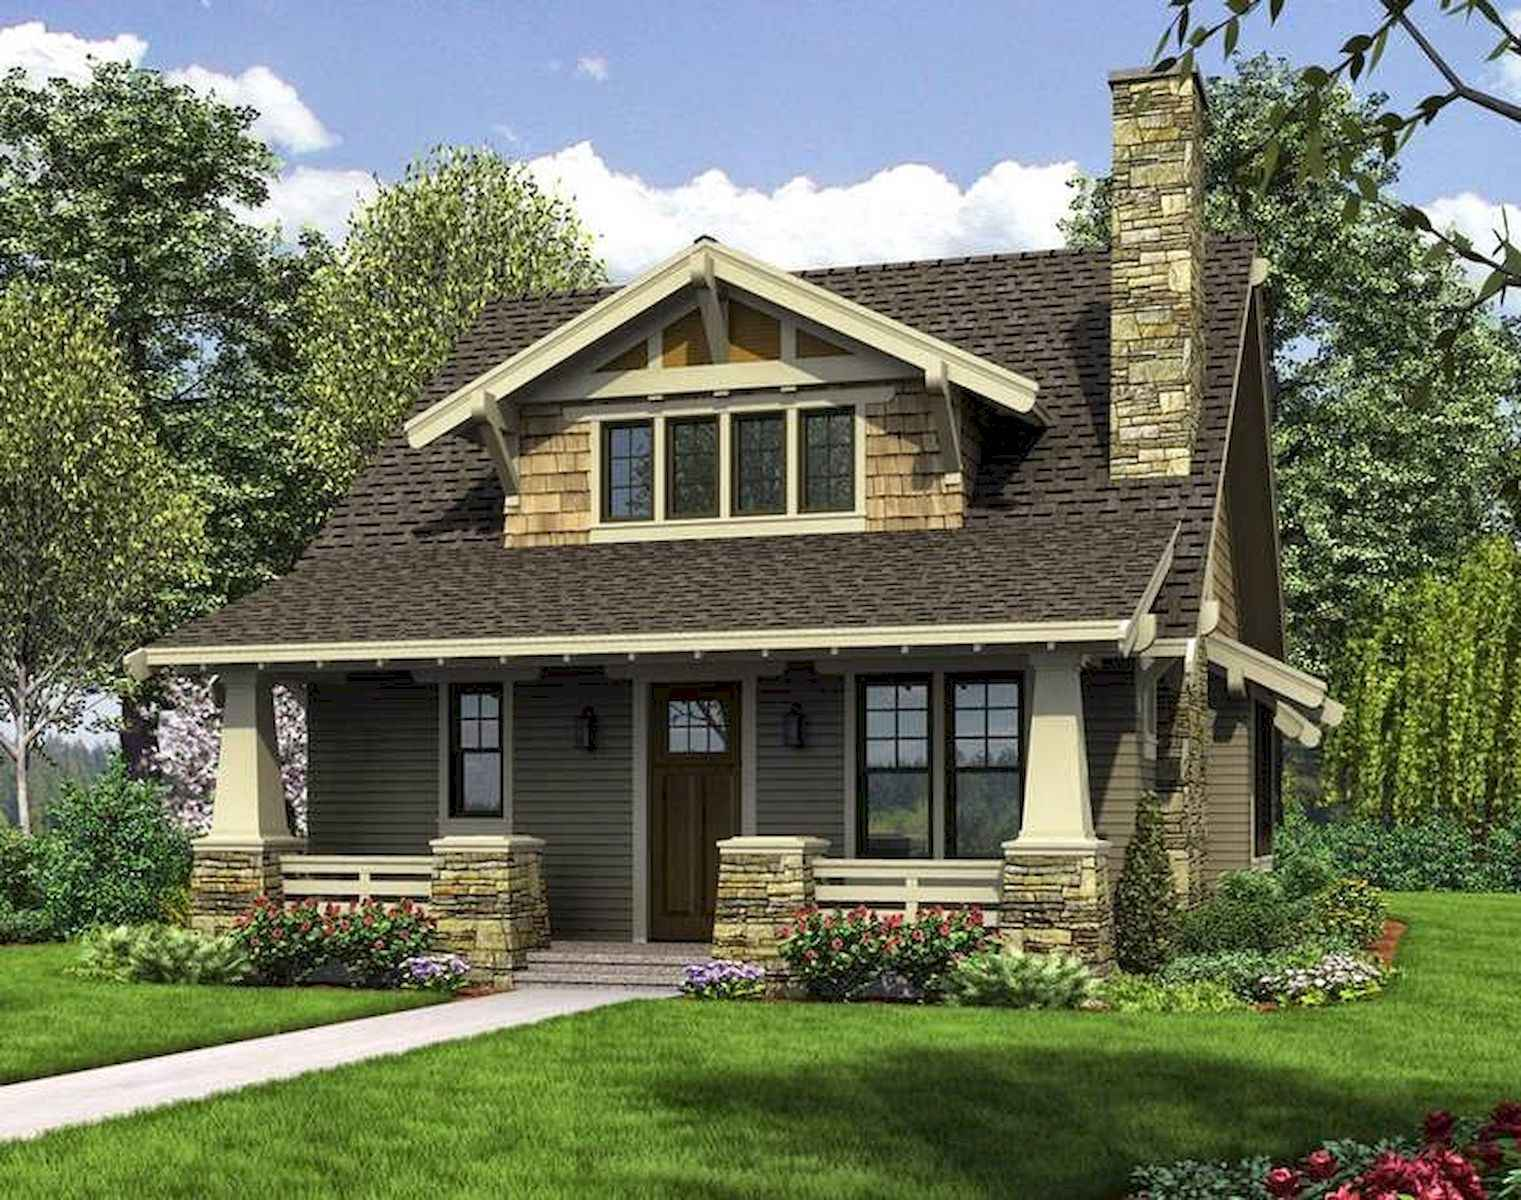 60 Rustic Log Cabin Homes Plans Design Ideas And Remodel (7)